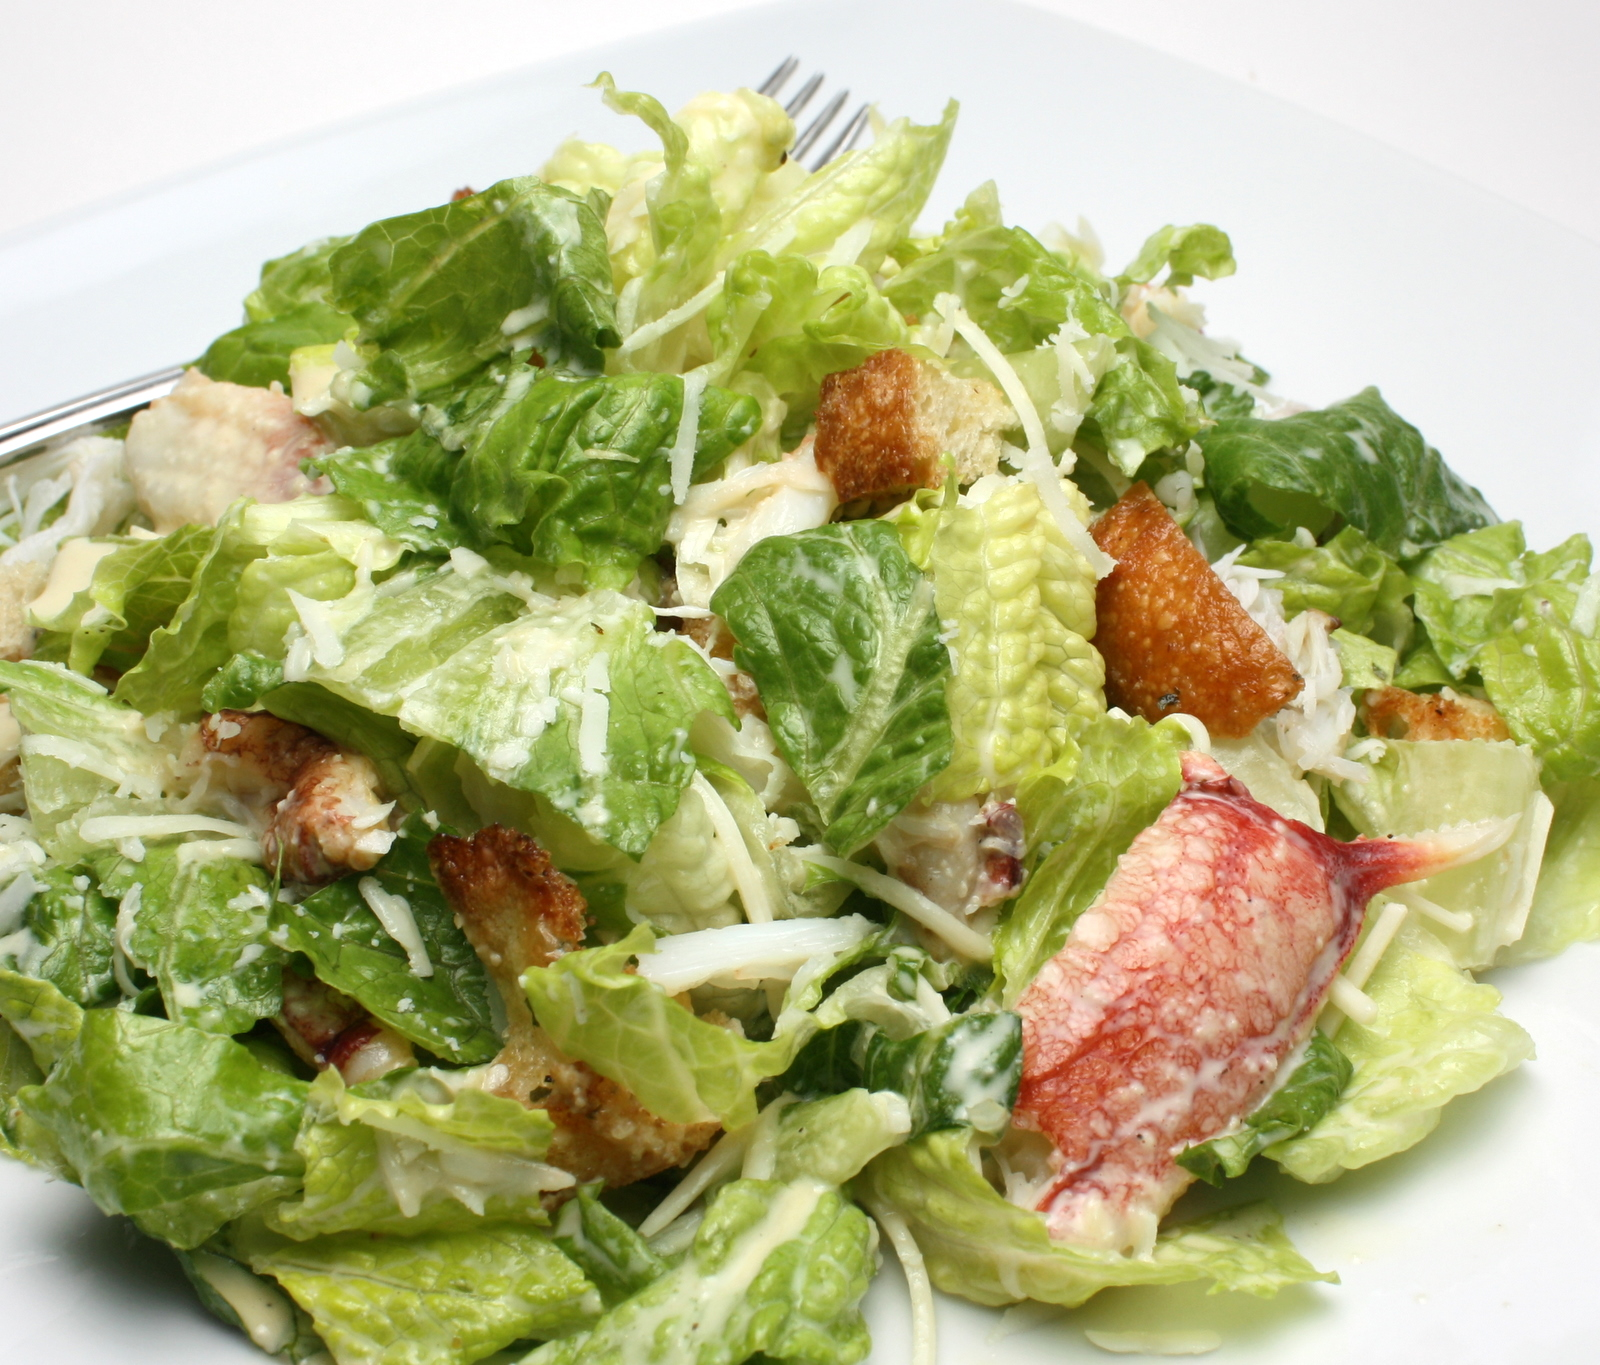 roamine lettuce, croutons, bacon and parm